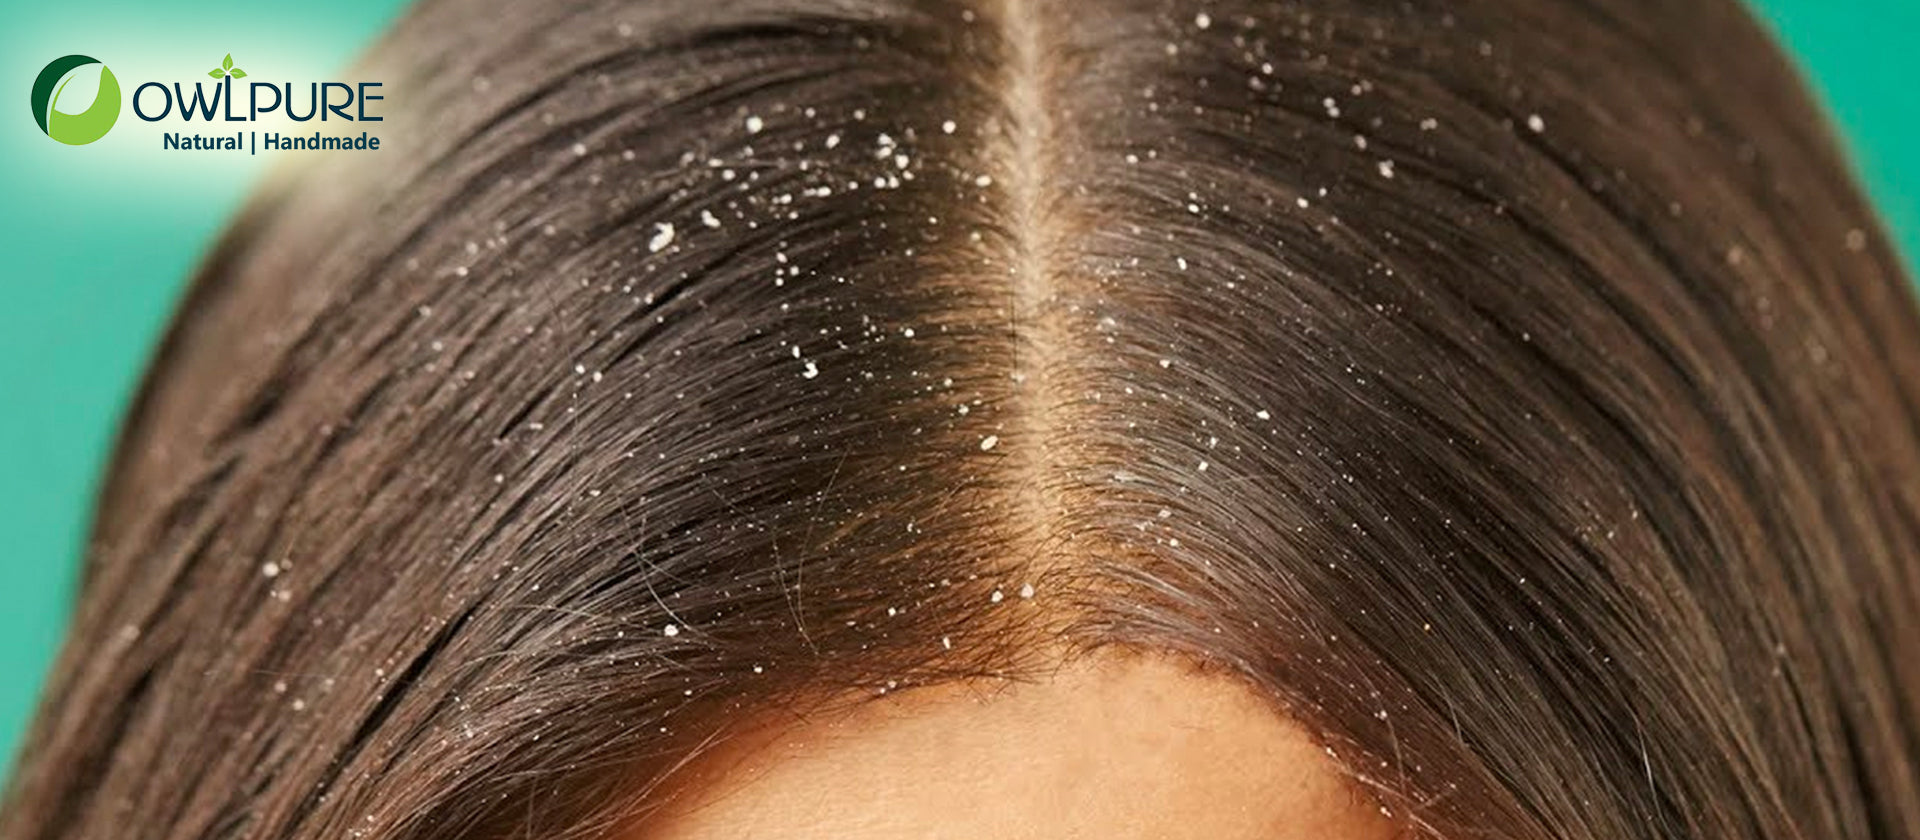 How to get rid of itchy and dandruff scalp naturally?